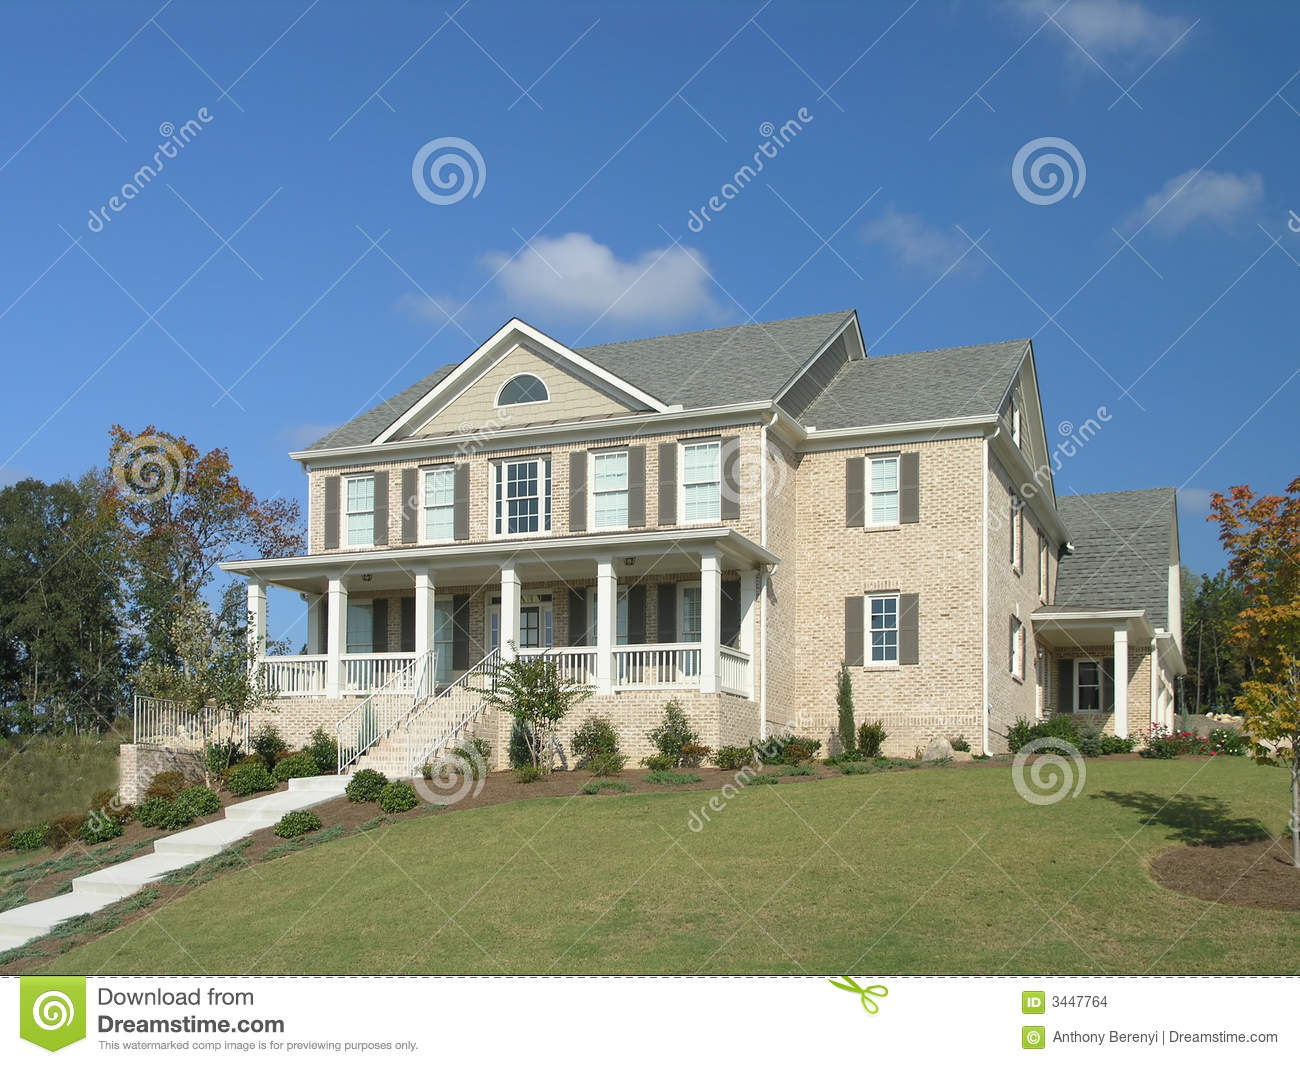 Luxury Home Exterior 19 Stock Images Image 3447764